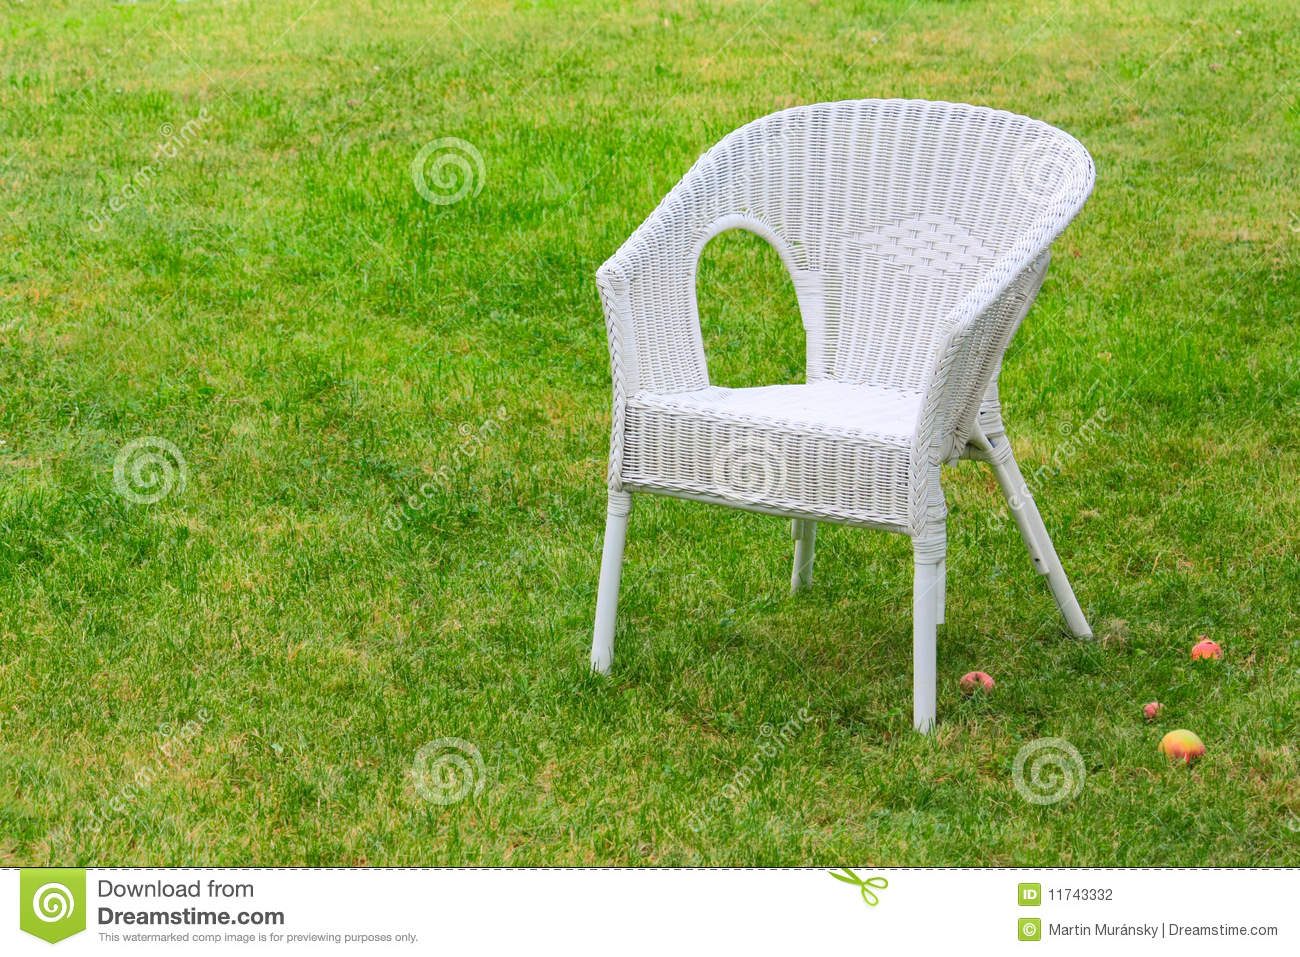 Garden Chair Stock graphy Image